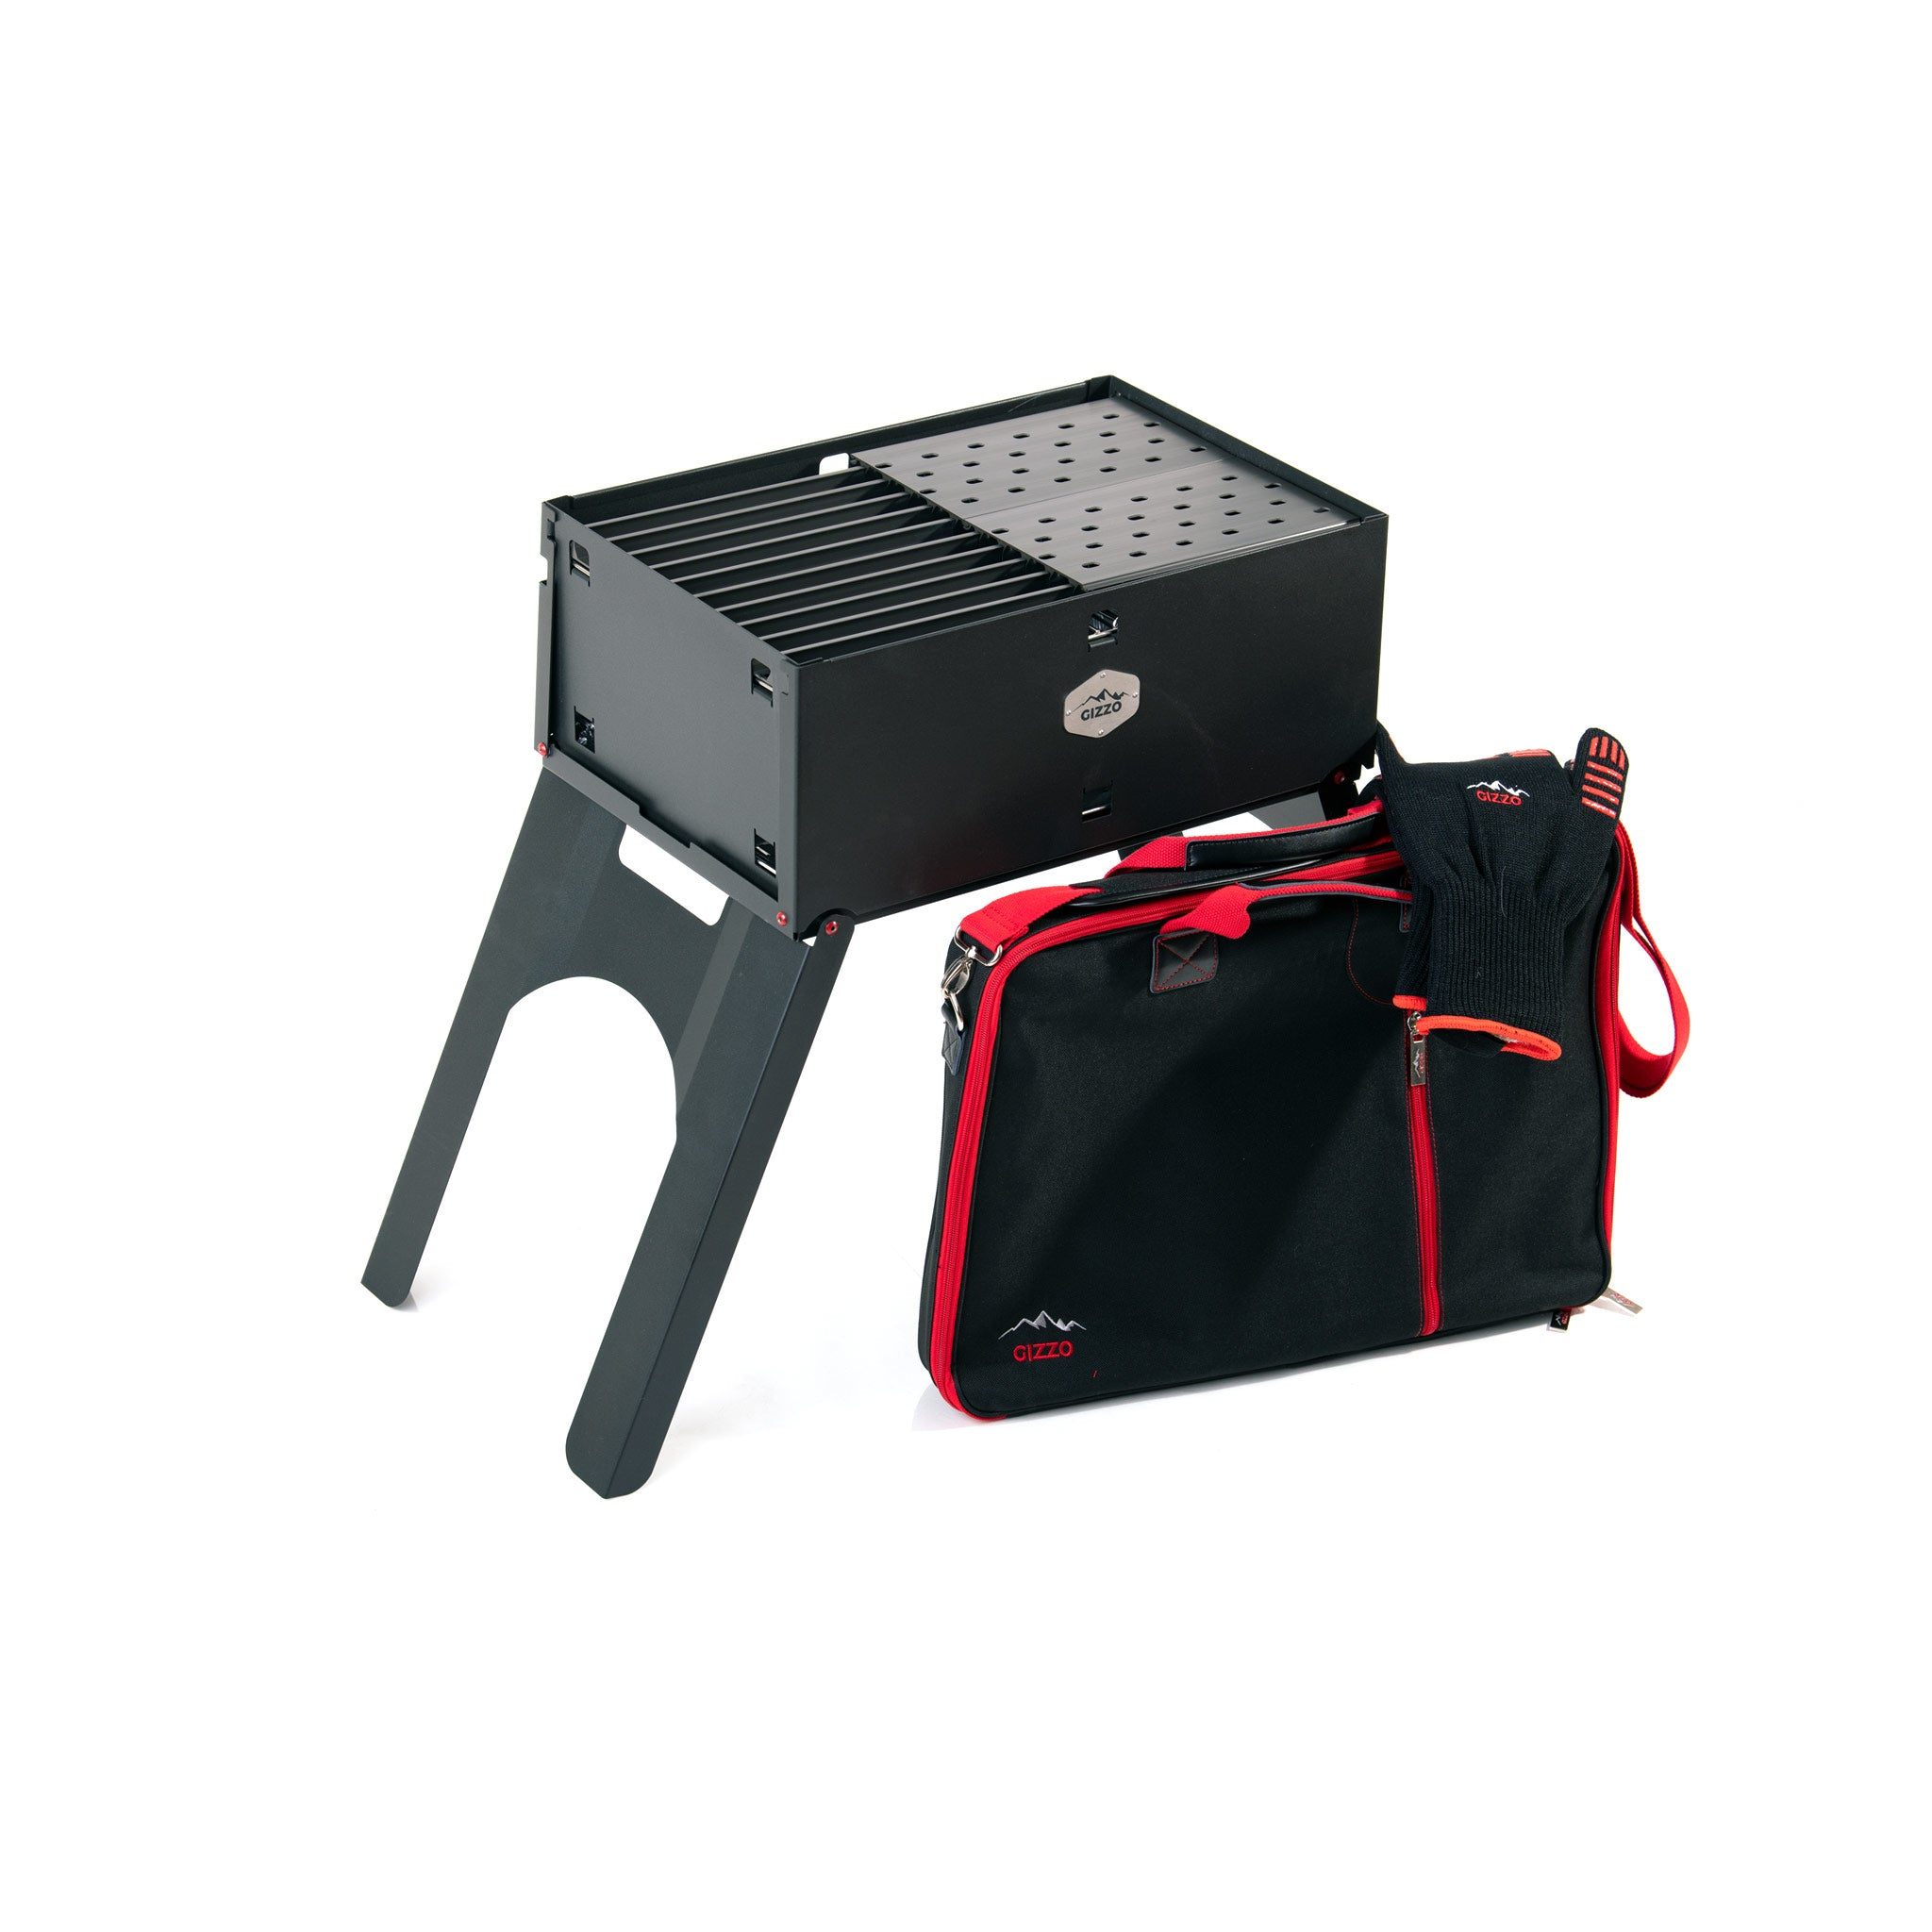 Portable grillgrate surface grill with bbq case